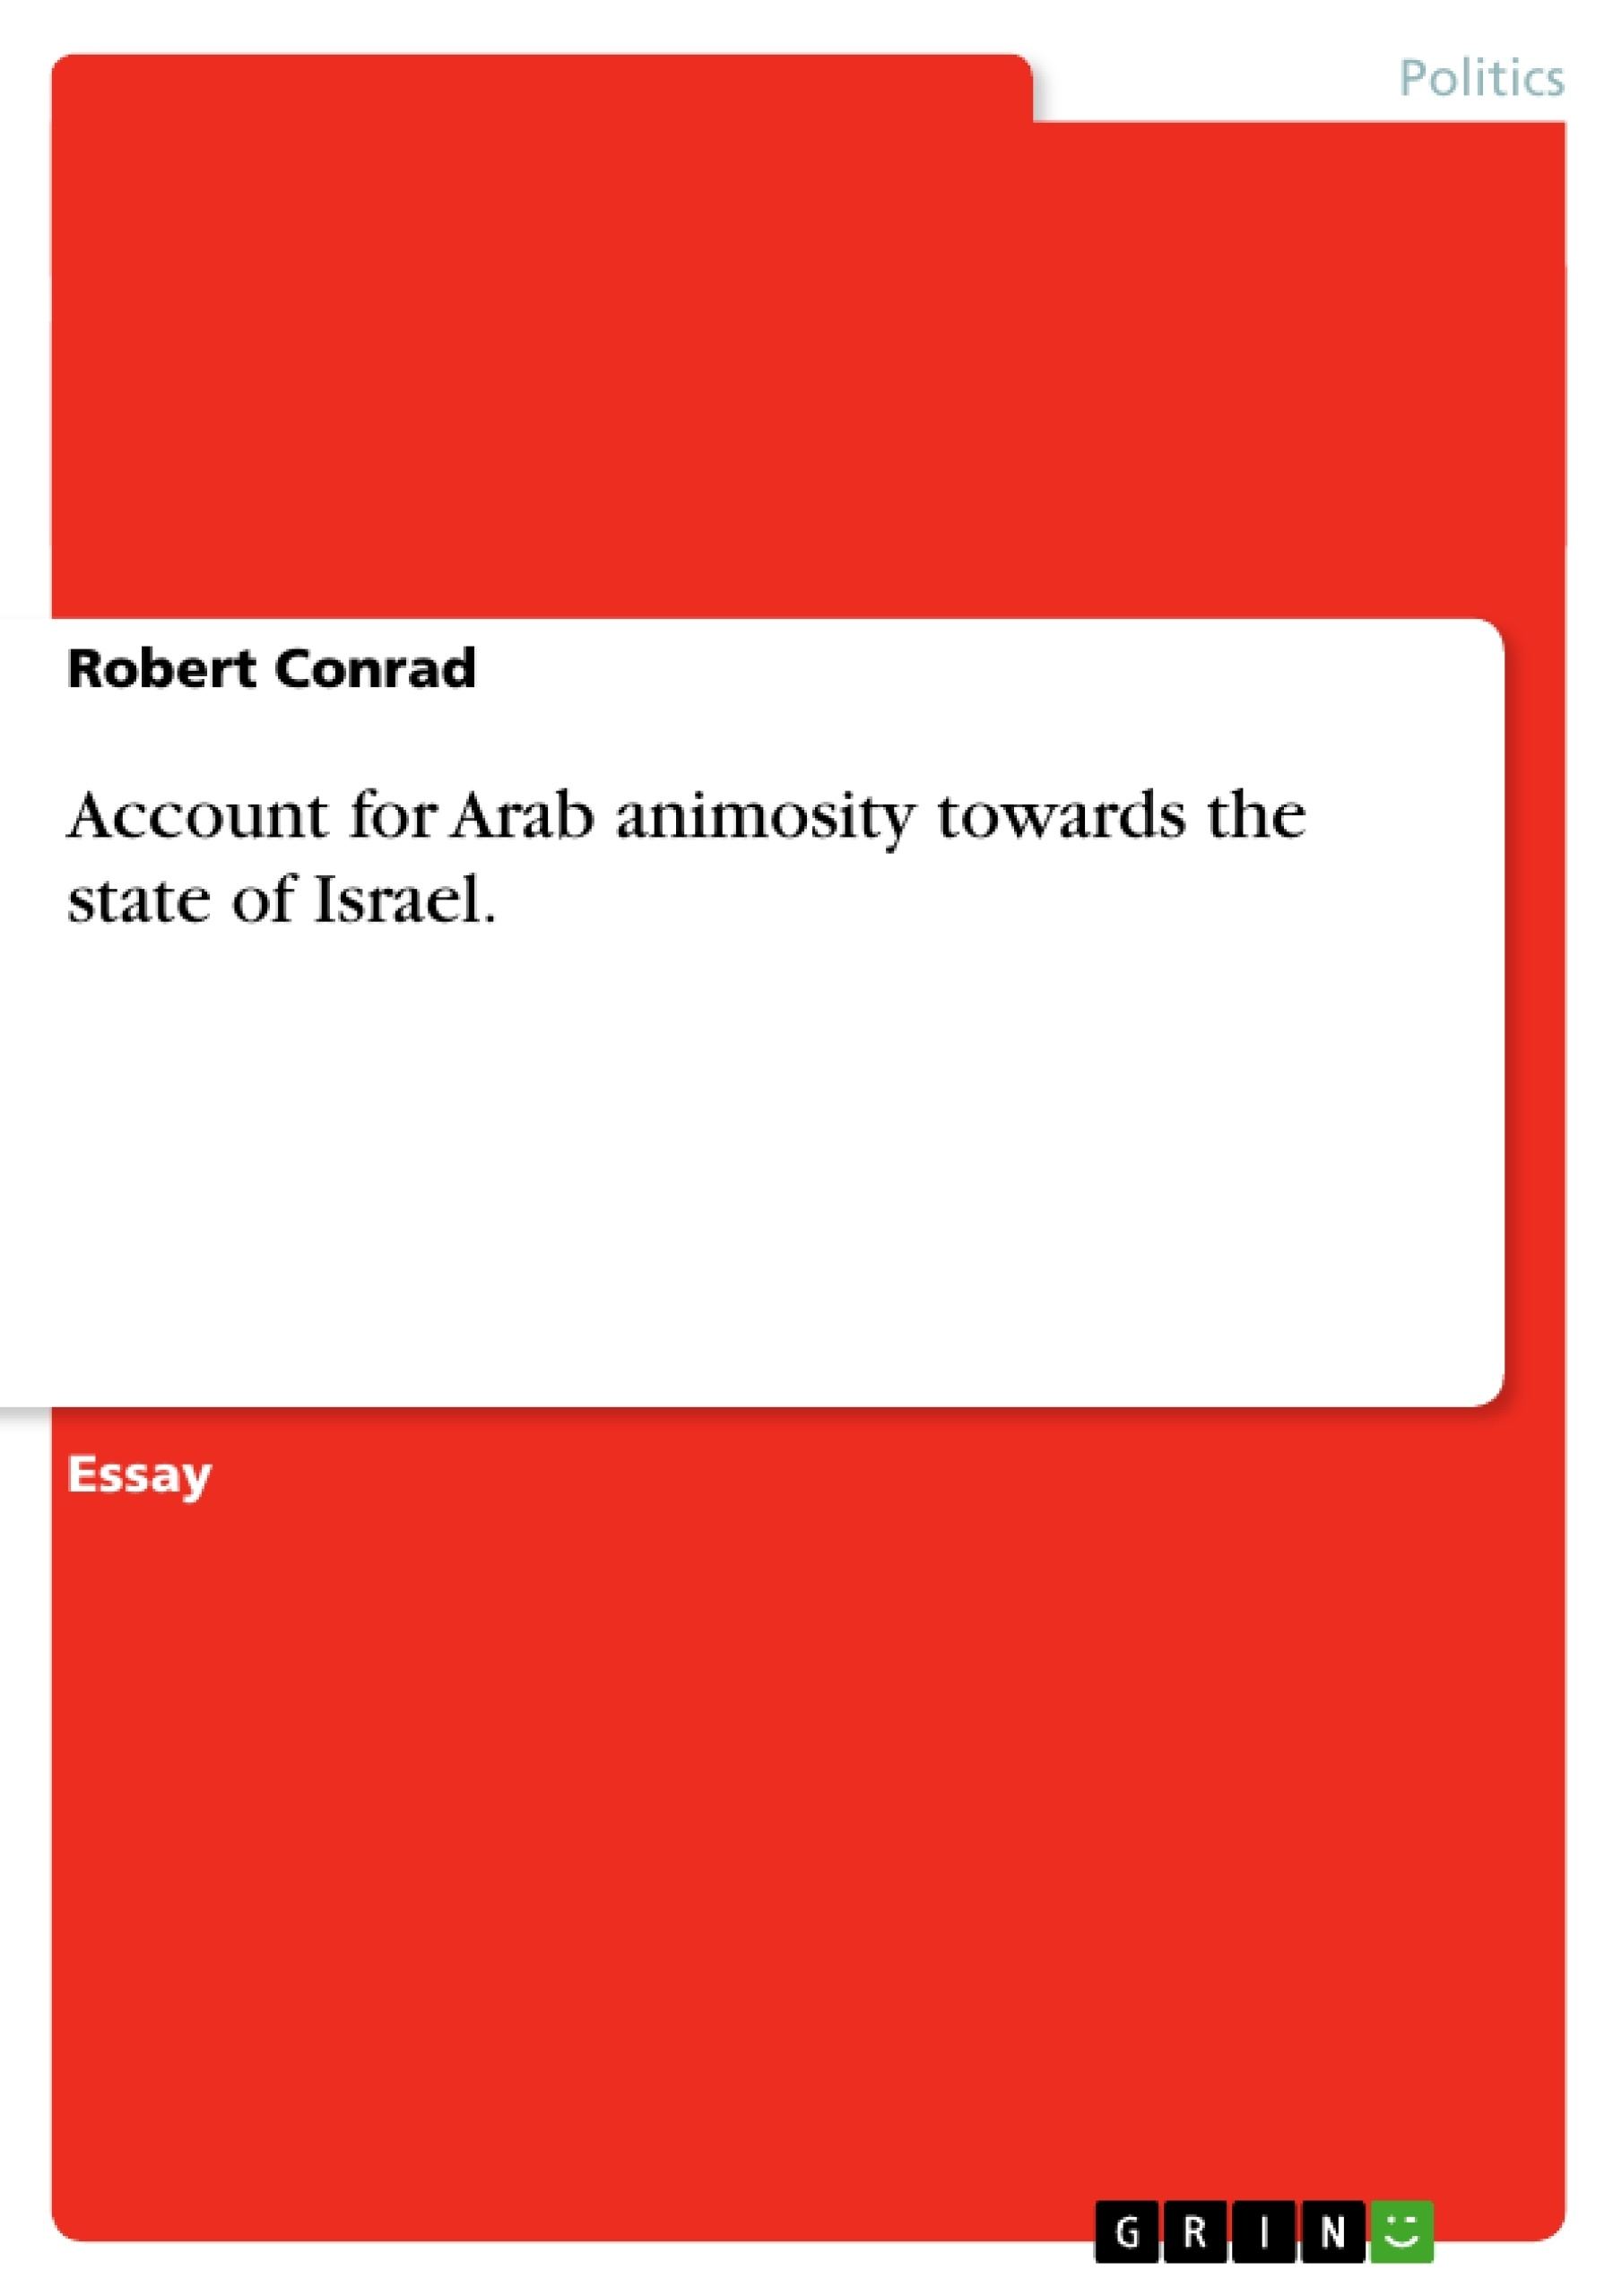 Title: Account for Arab animosity towards the state of Israel.